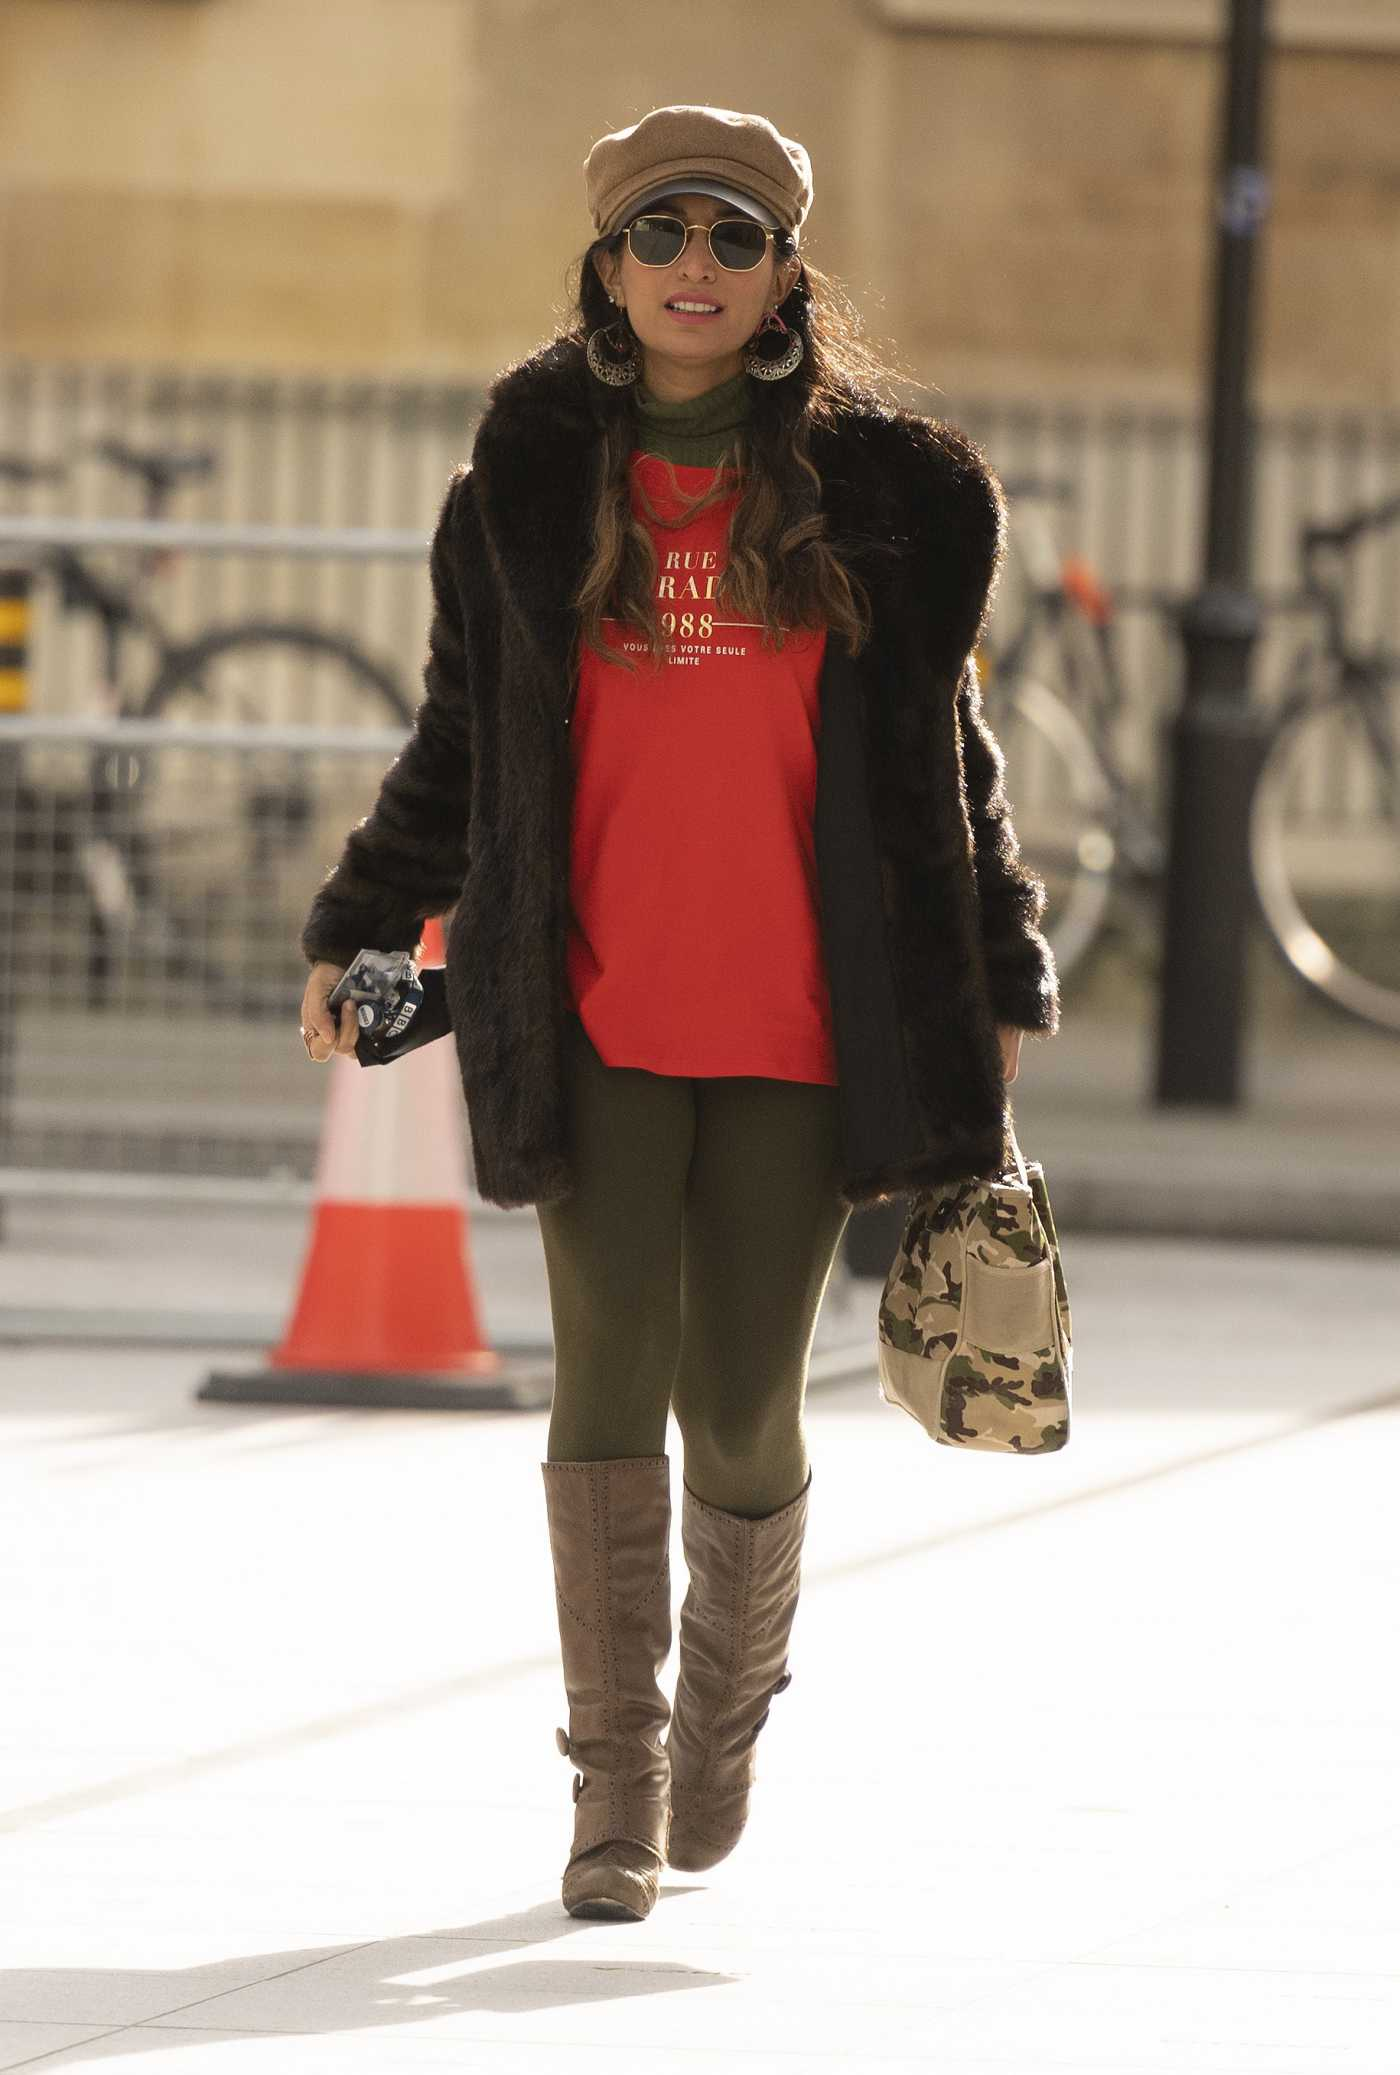 Preeya Kalidas in a Beige Cap Arrives at the BBC Broadcasting House in London 02/20/2021